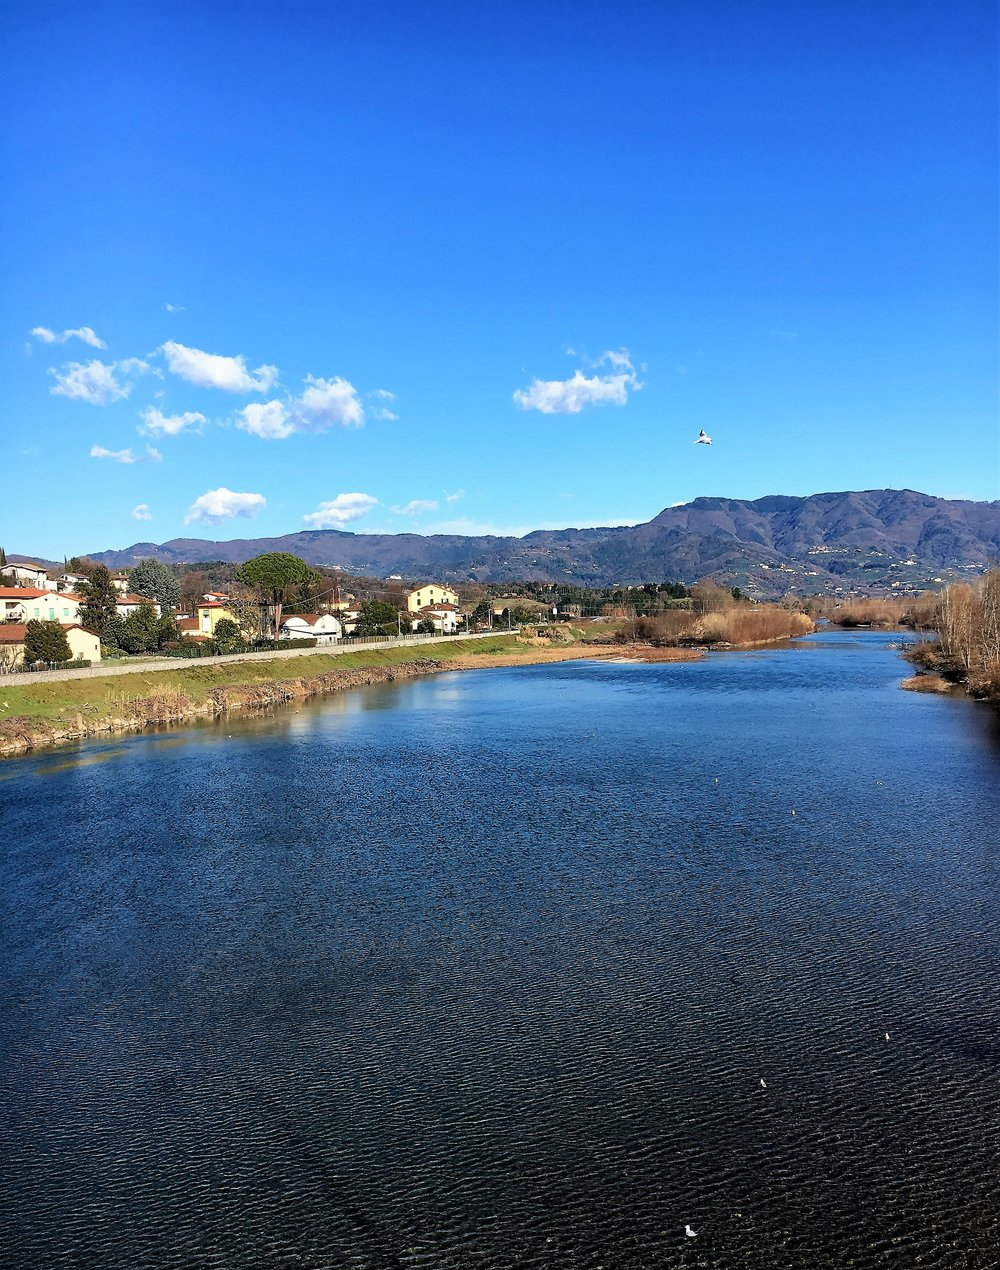 The River Serchio, January 2017.